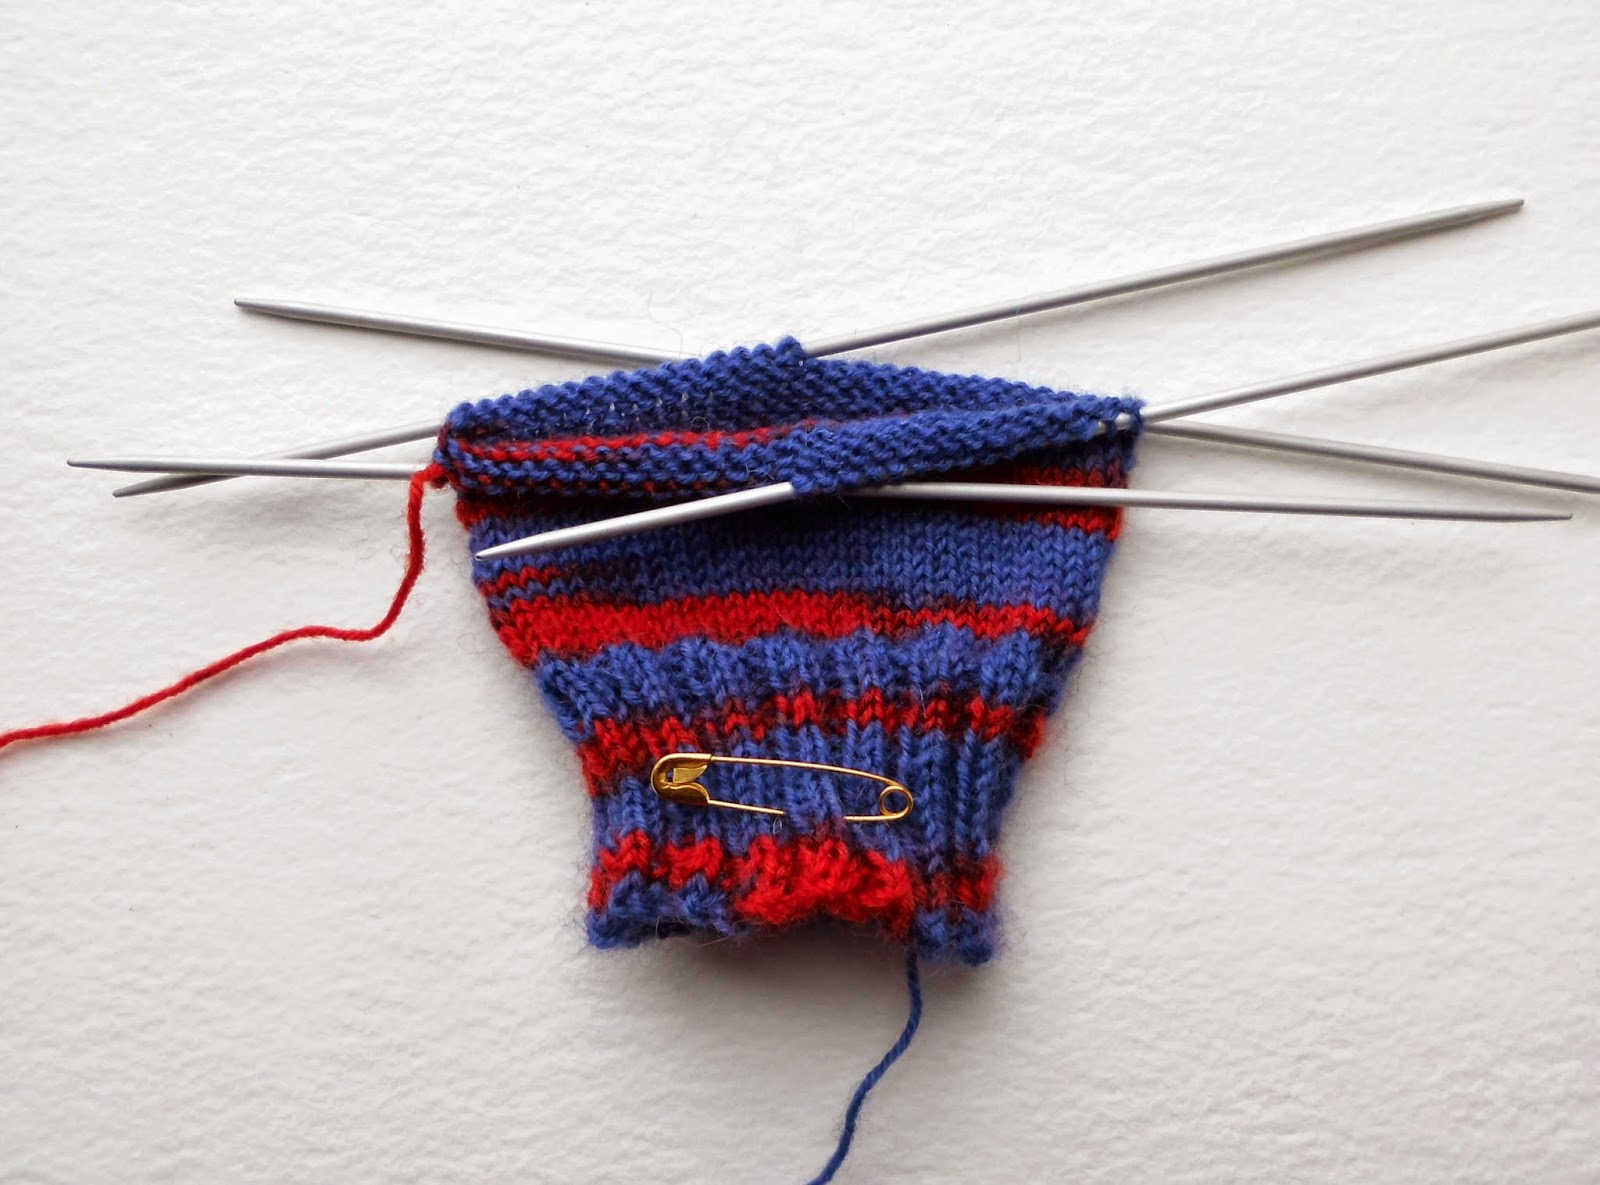 Example of knitting on double pointed needles